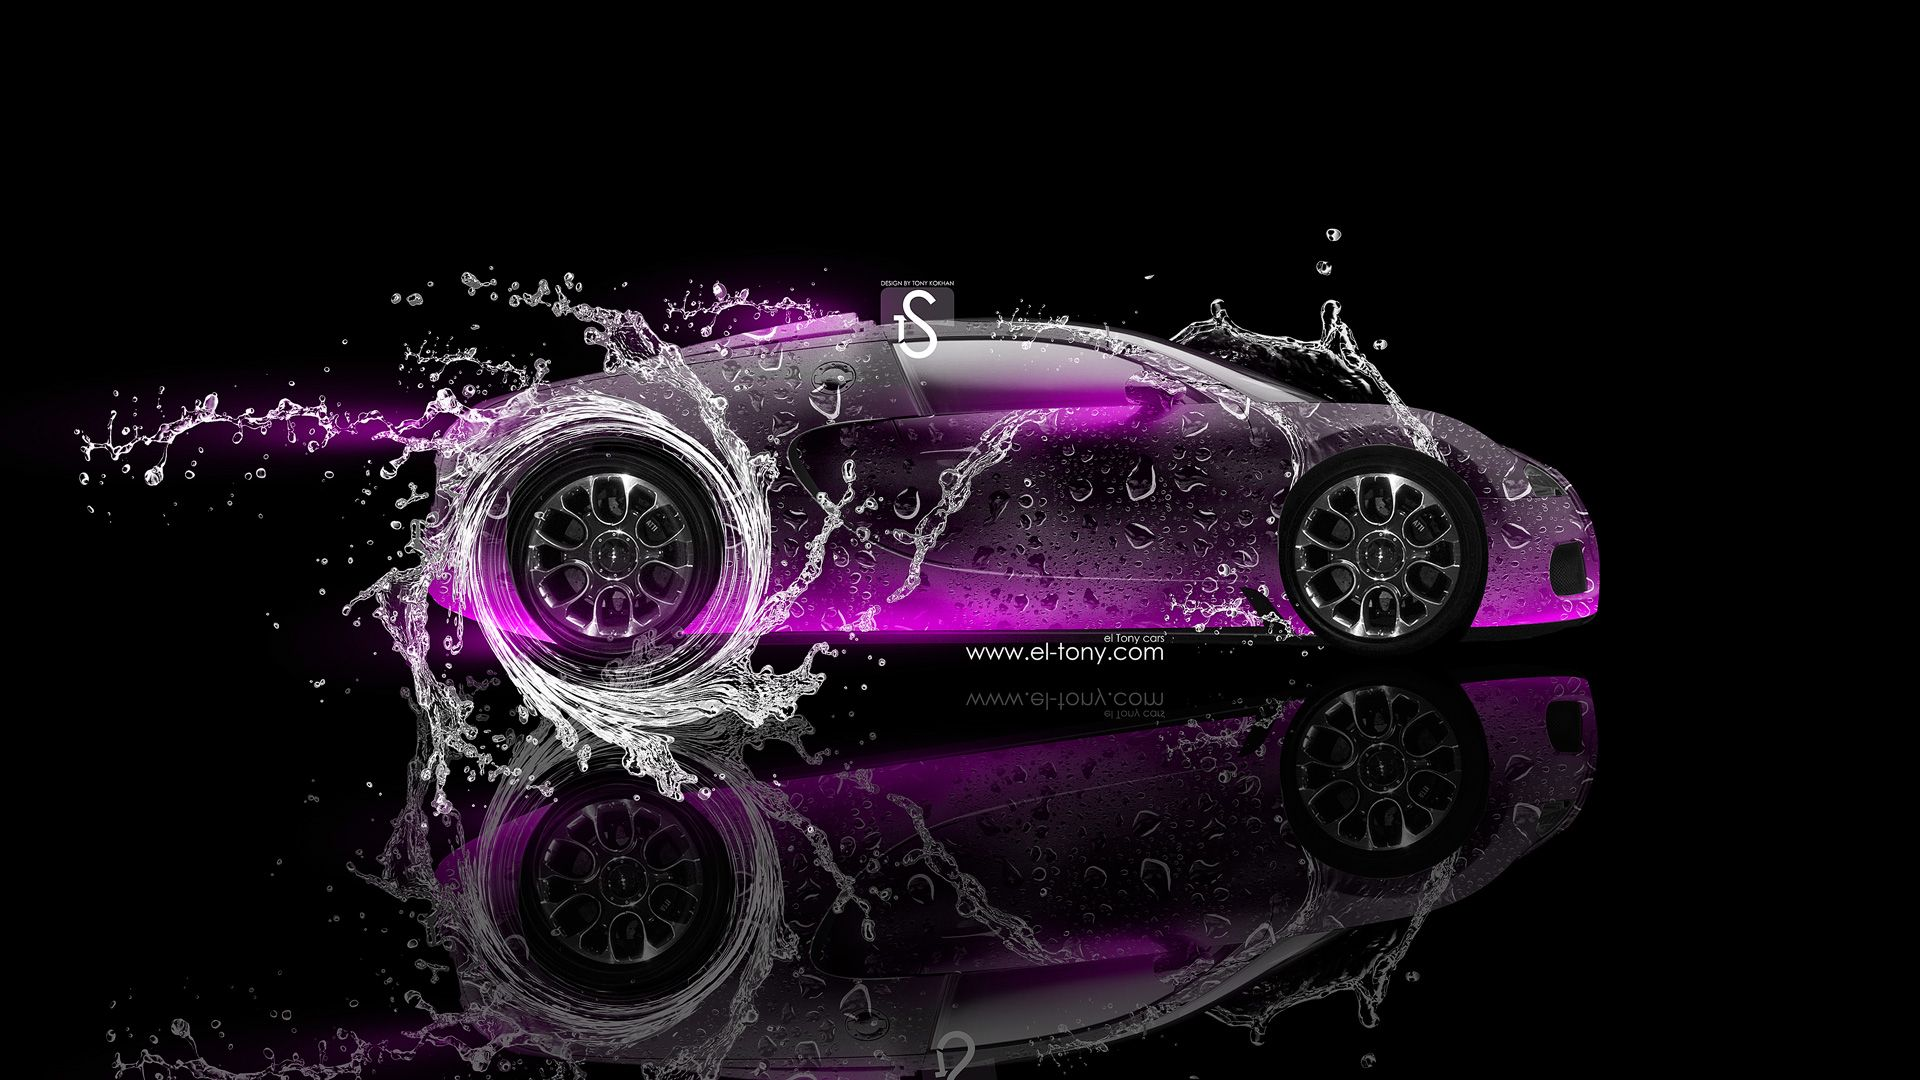 Charmant Gold Bugatti Veyron With Neon | Bugatti Veyron Super Water Car 2013